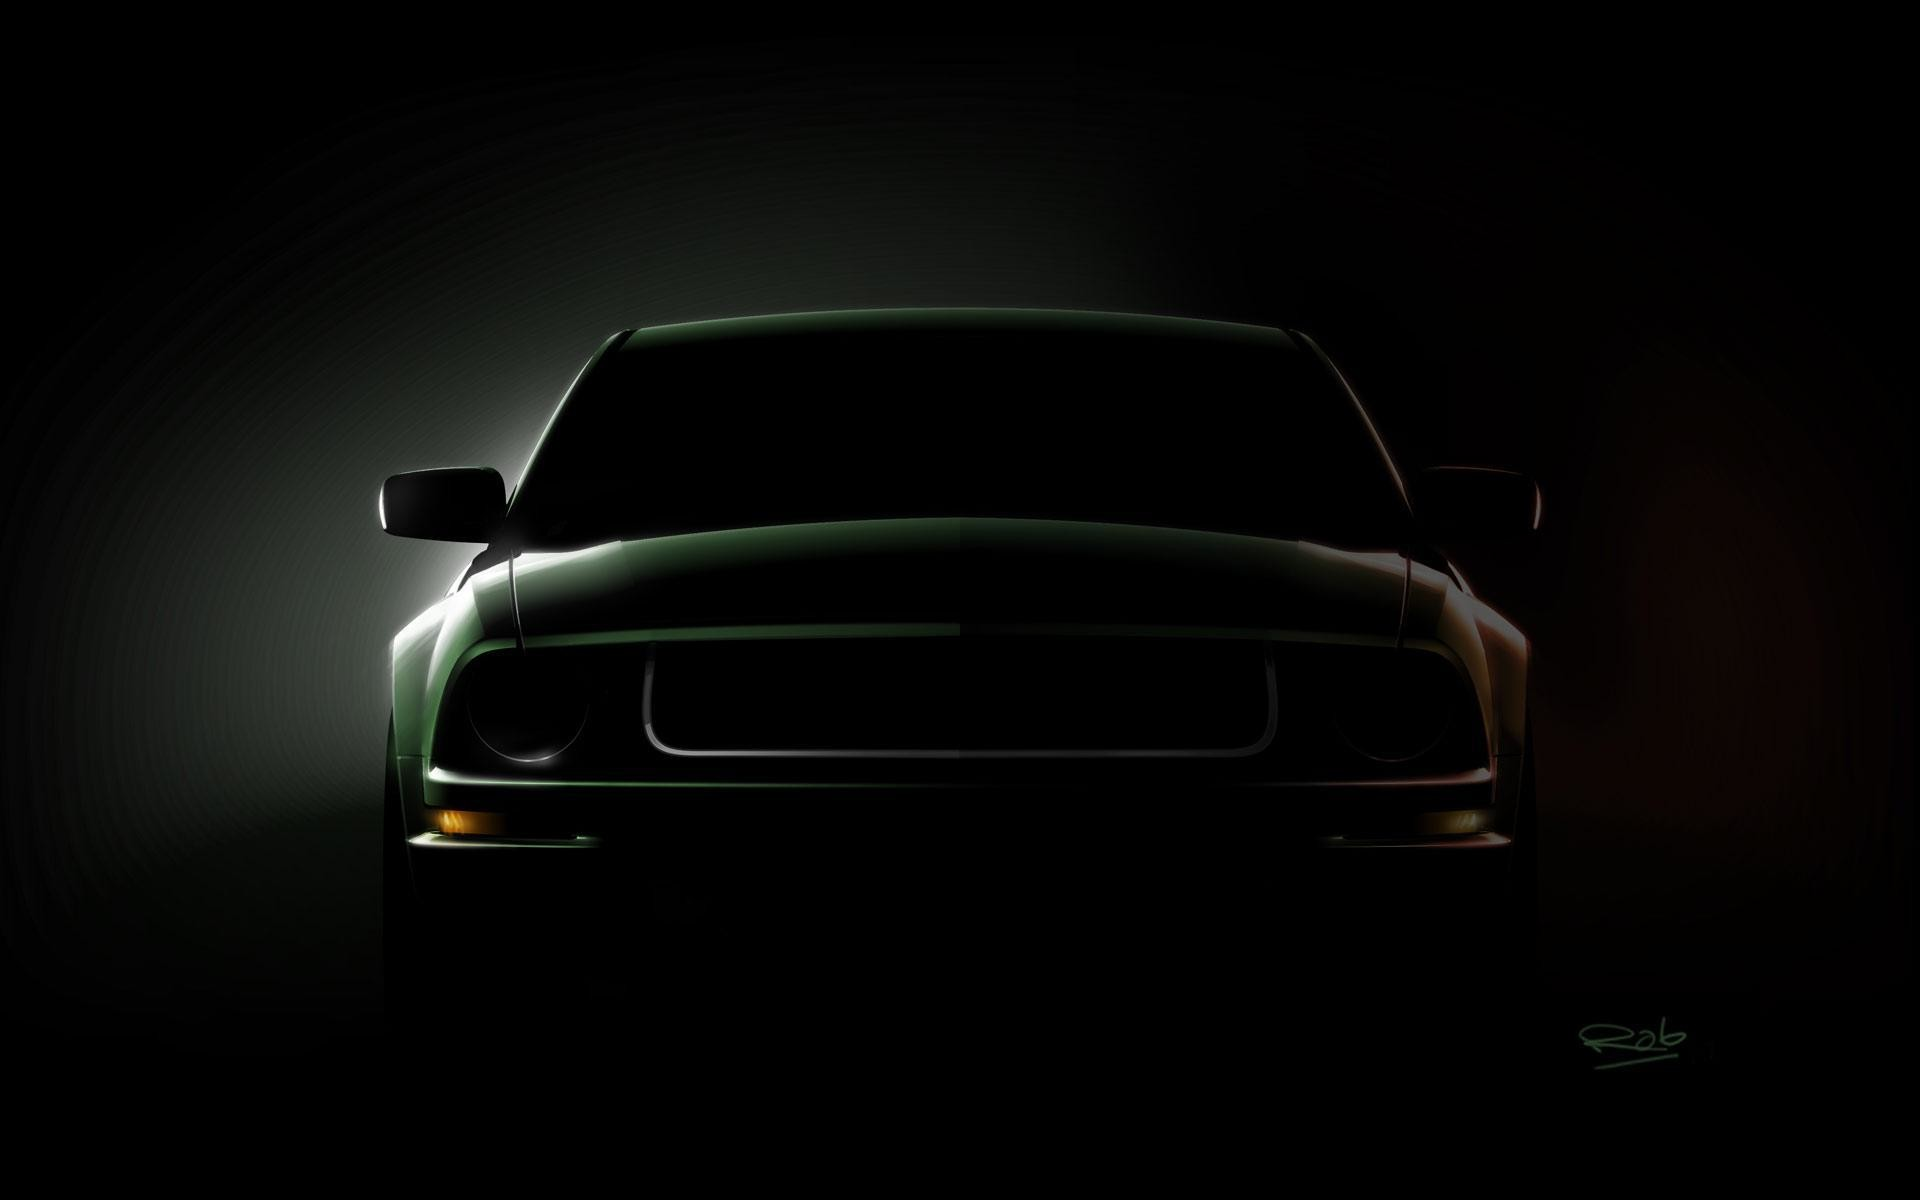 1920x1200 Mustang Logo Black Backgrounds